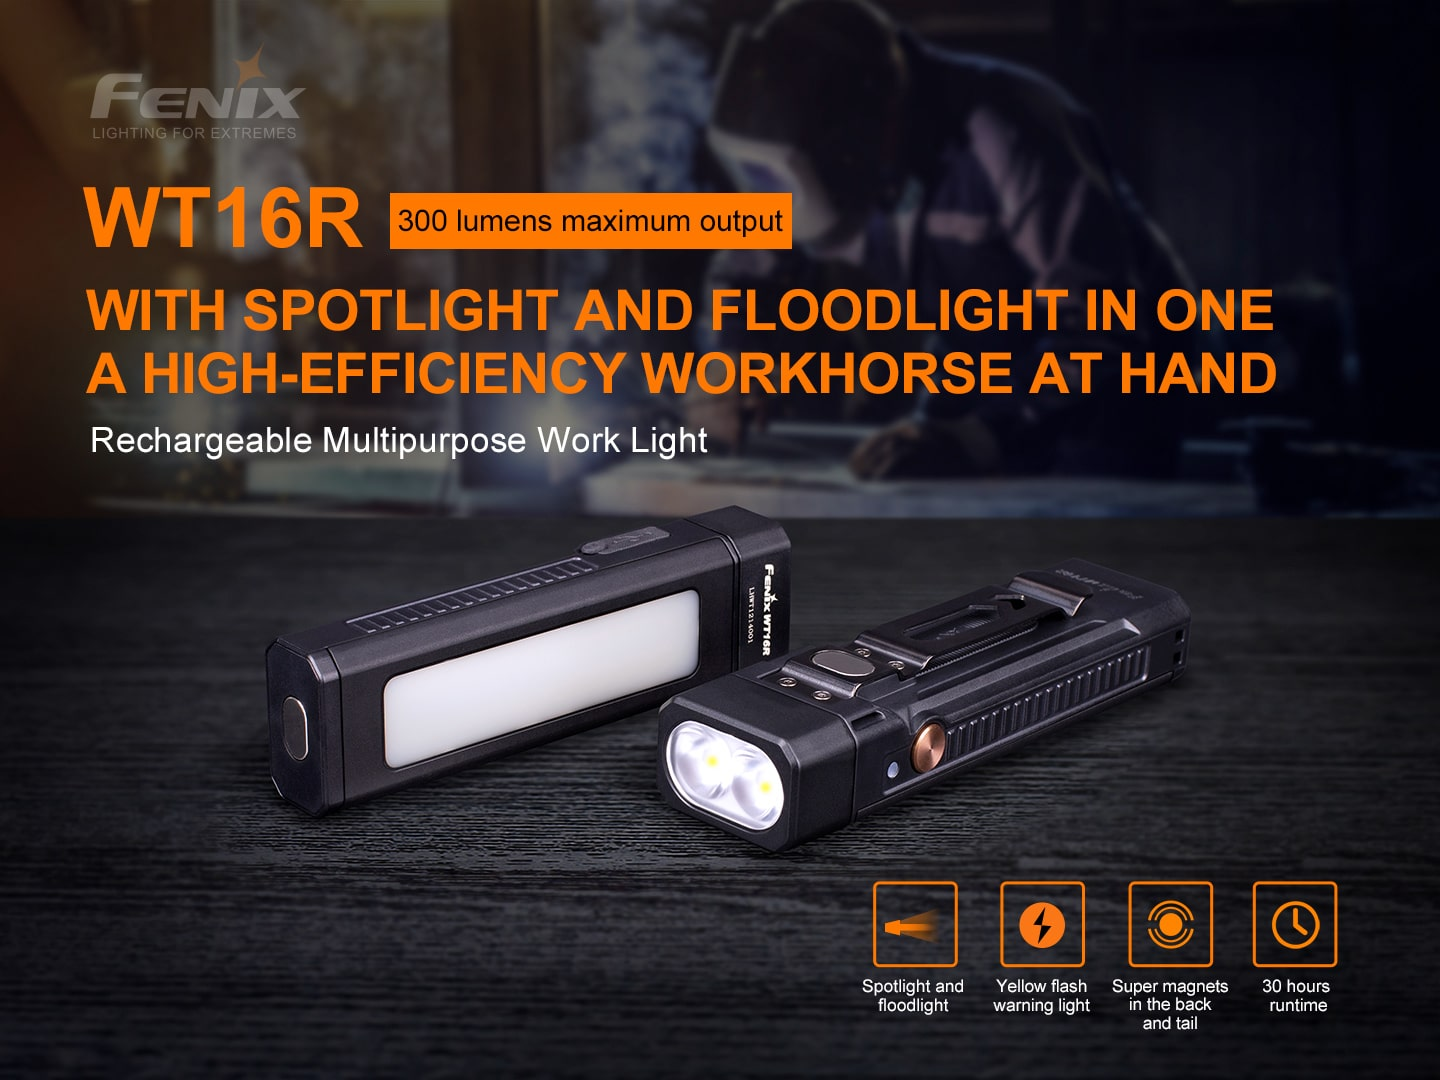 Fenix WT16R Rechargeable LED Torch Light in India, Perfect Outdoor Work Light, 300 Lumens Spot light and Flood Light Torch, White & Yellow LED Light Torch